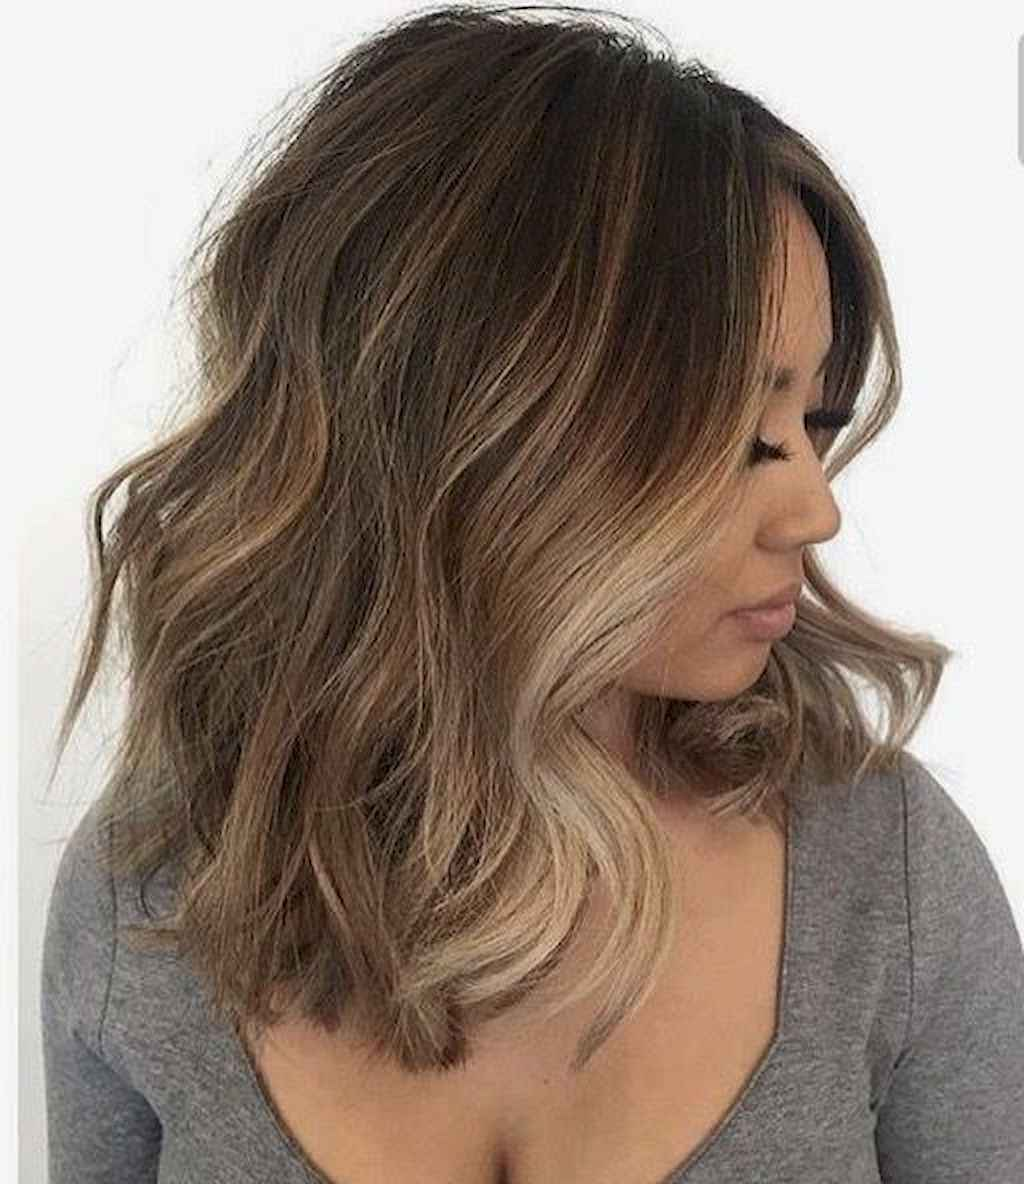 15 Easy Summer Hairstyle To Do Yourself